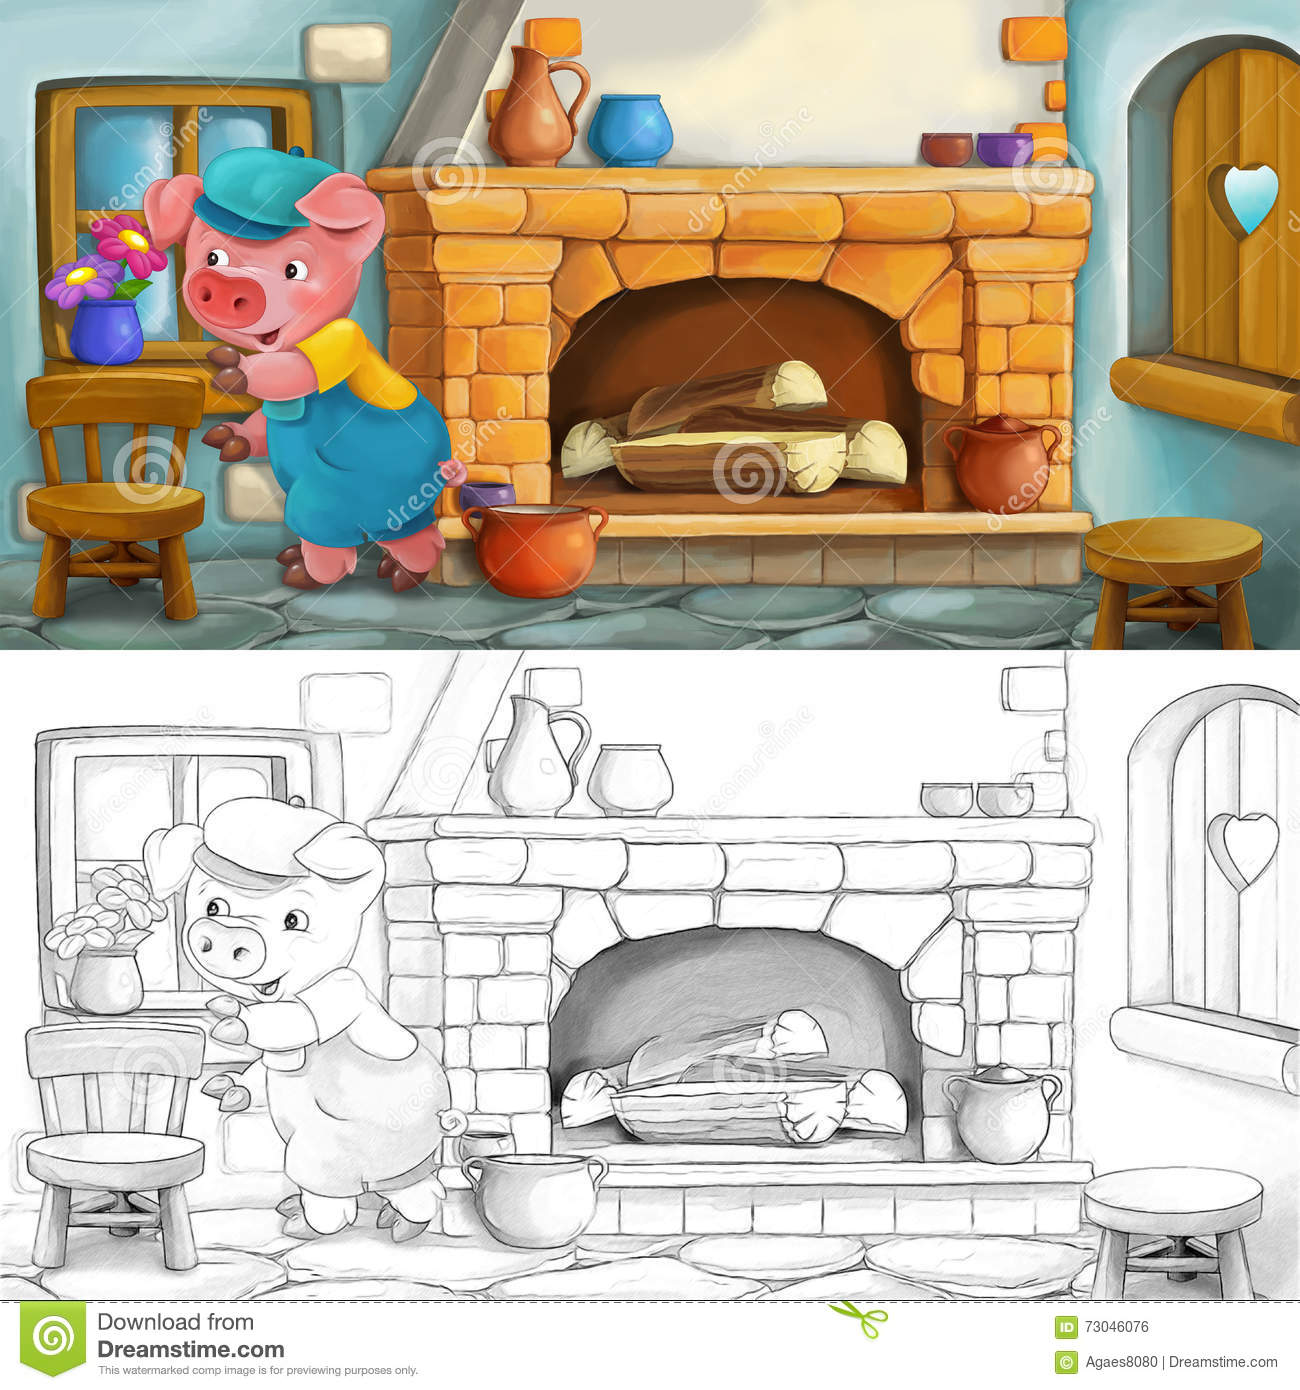 Cartoon Scene Of A Pig With A Child In The Kitchen - Coloring Page ...